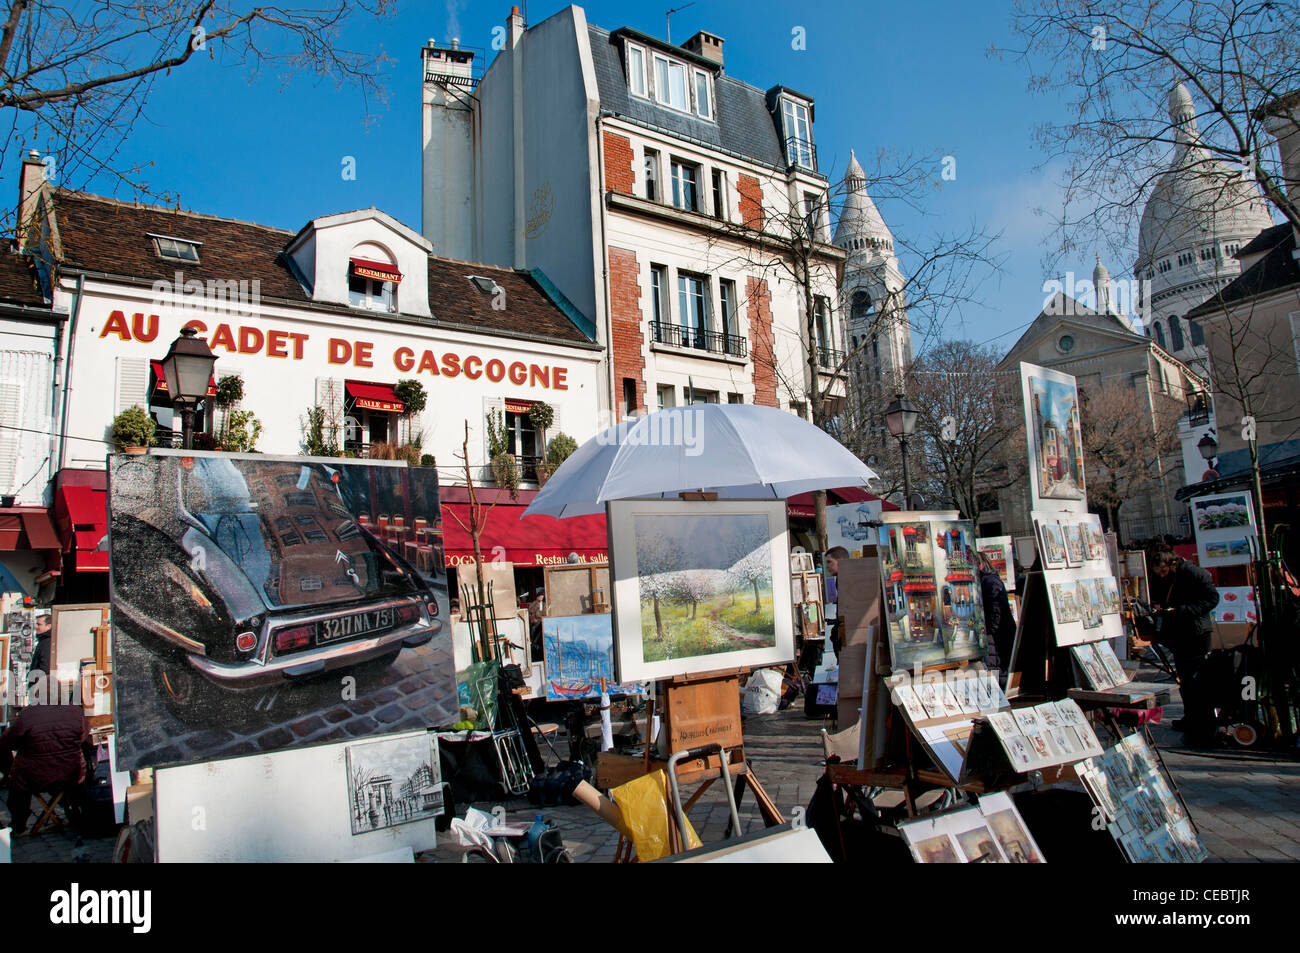 place du tertre montmartre sacre coeur paris peintre peinture banque d 39 images photo stock. Black Bedroom Furniture Sets. Home Design Ideas